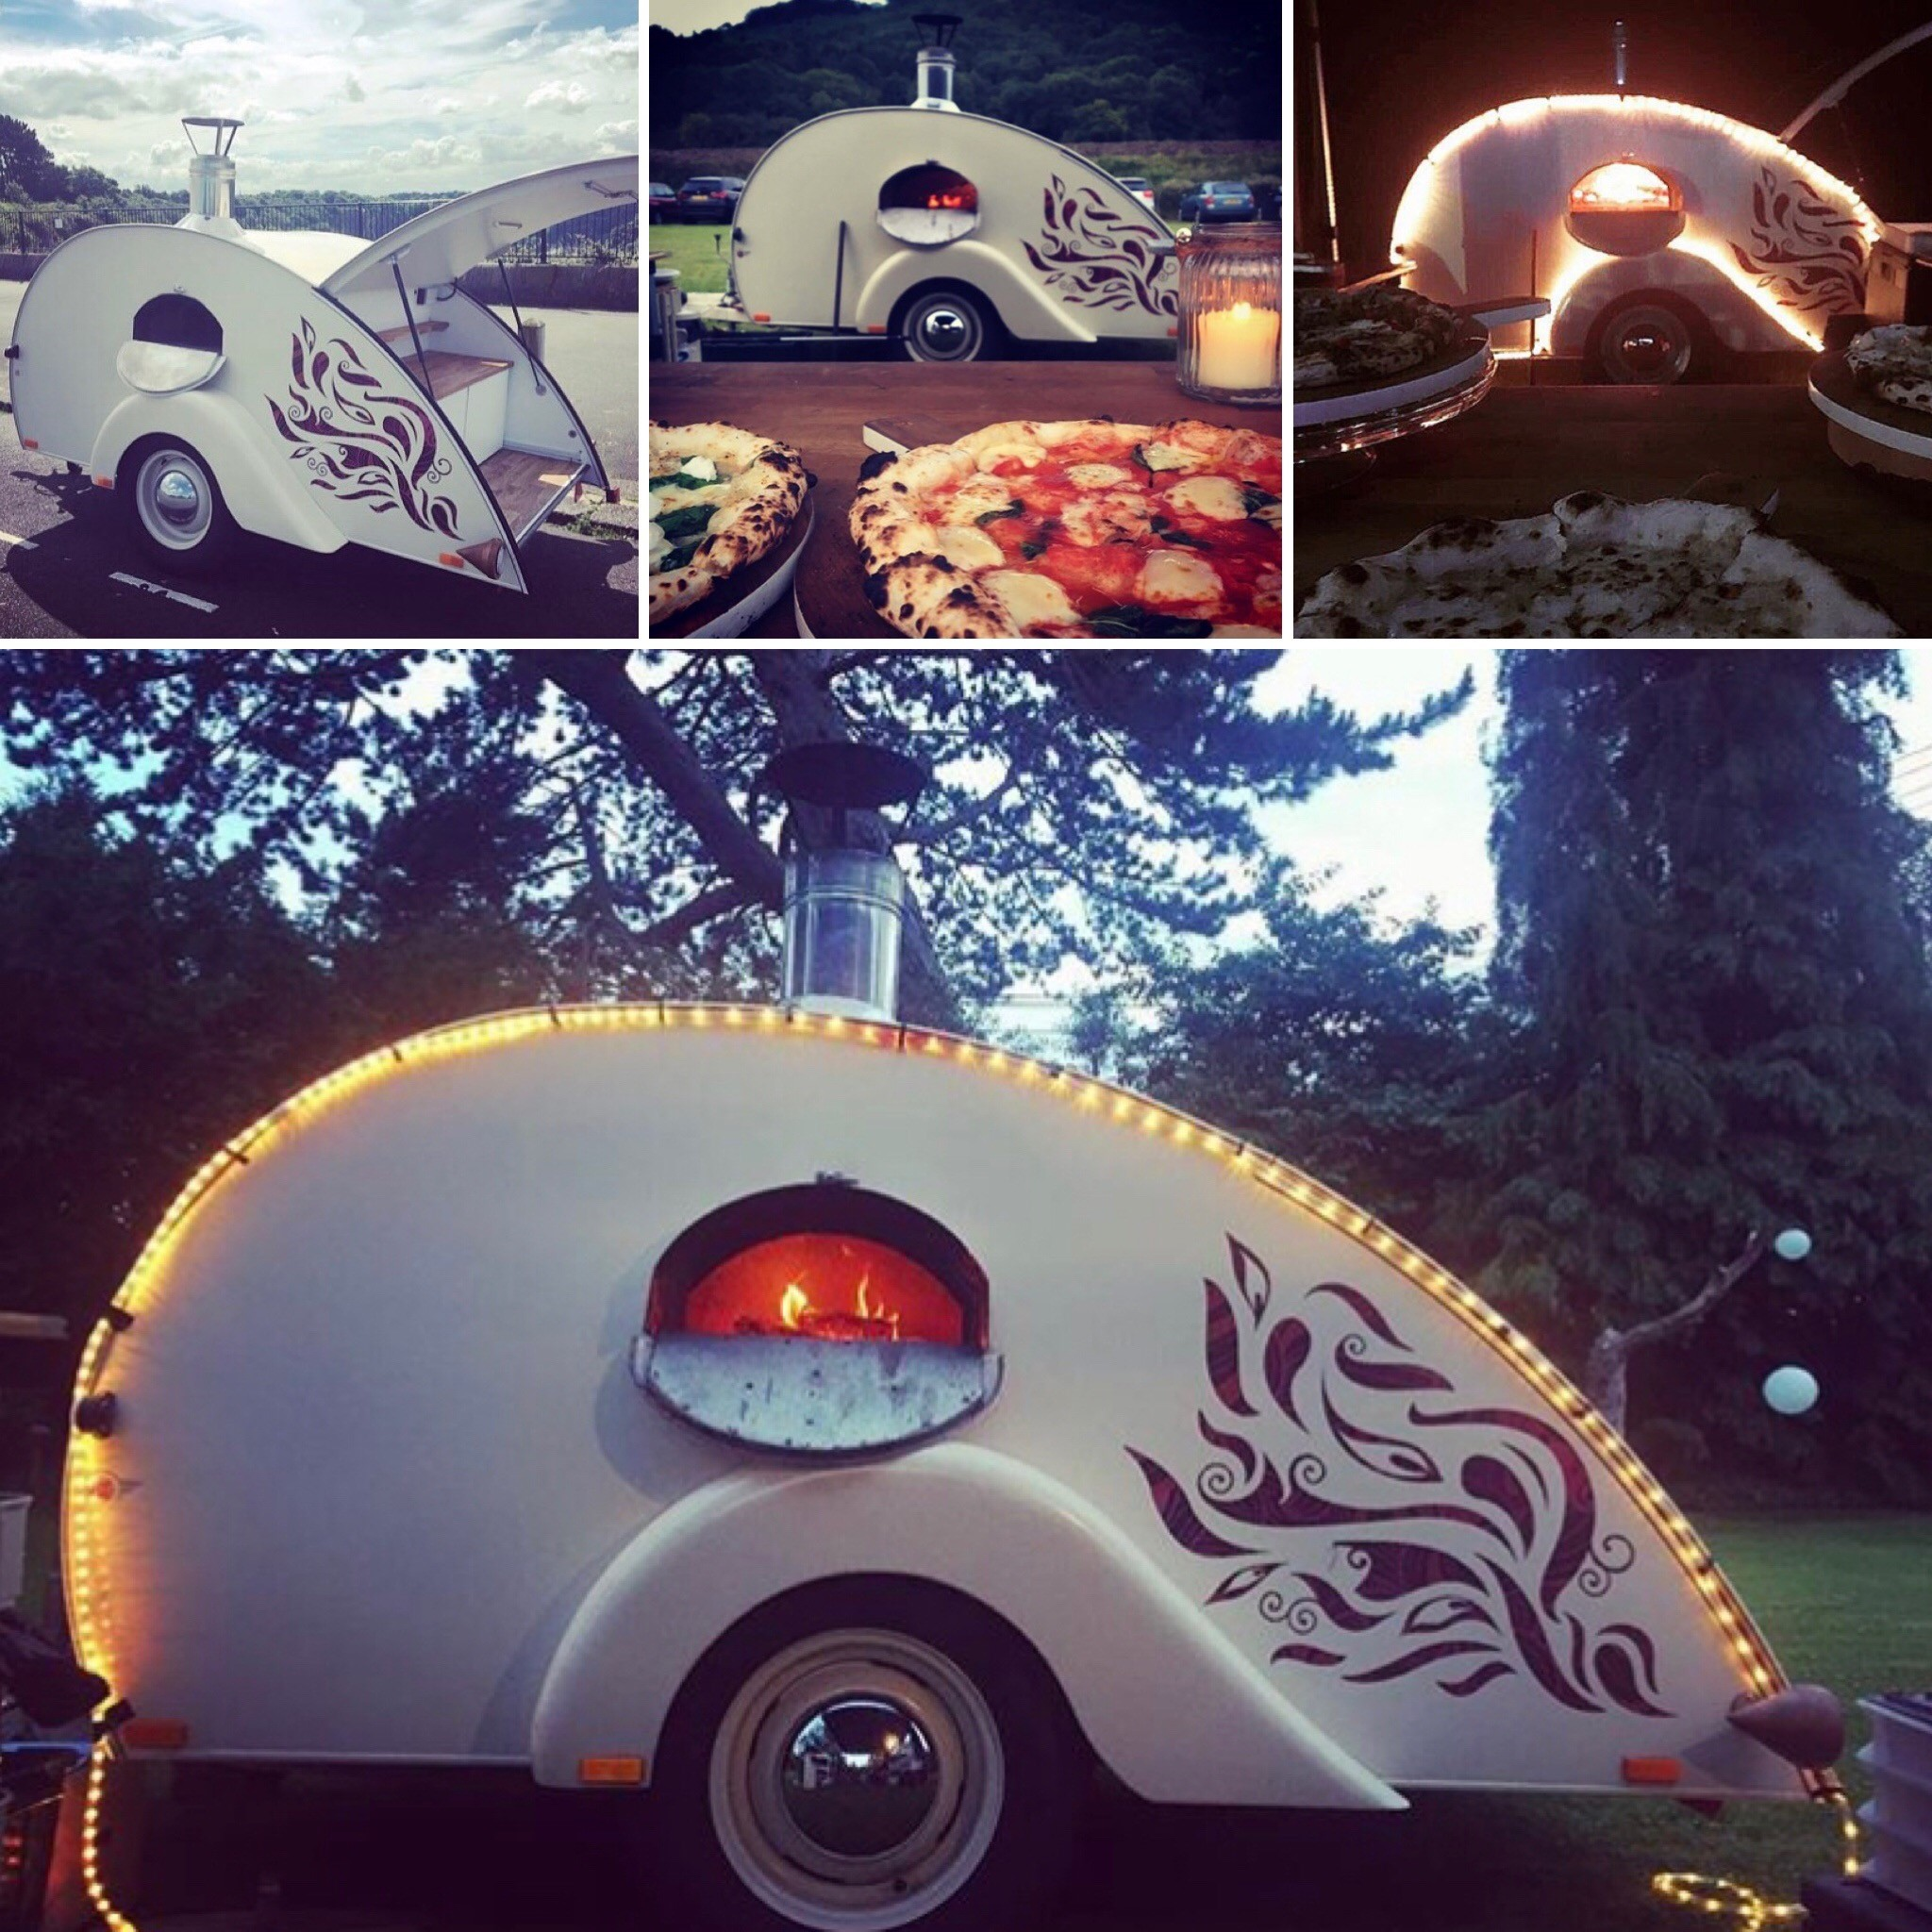 The Firebird Pizza Oven Hire